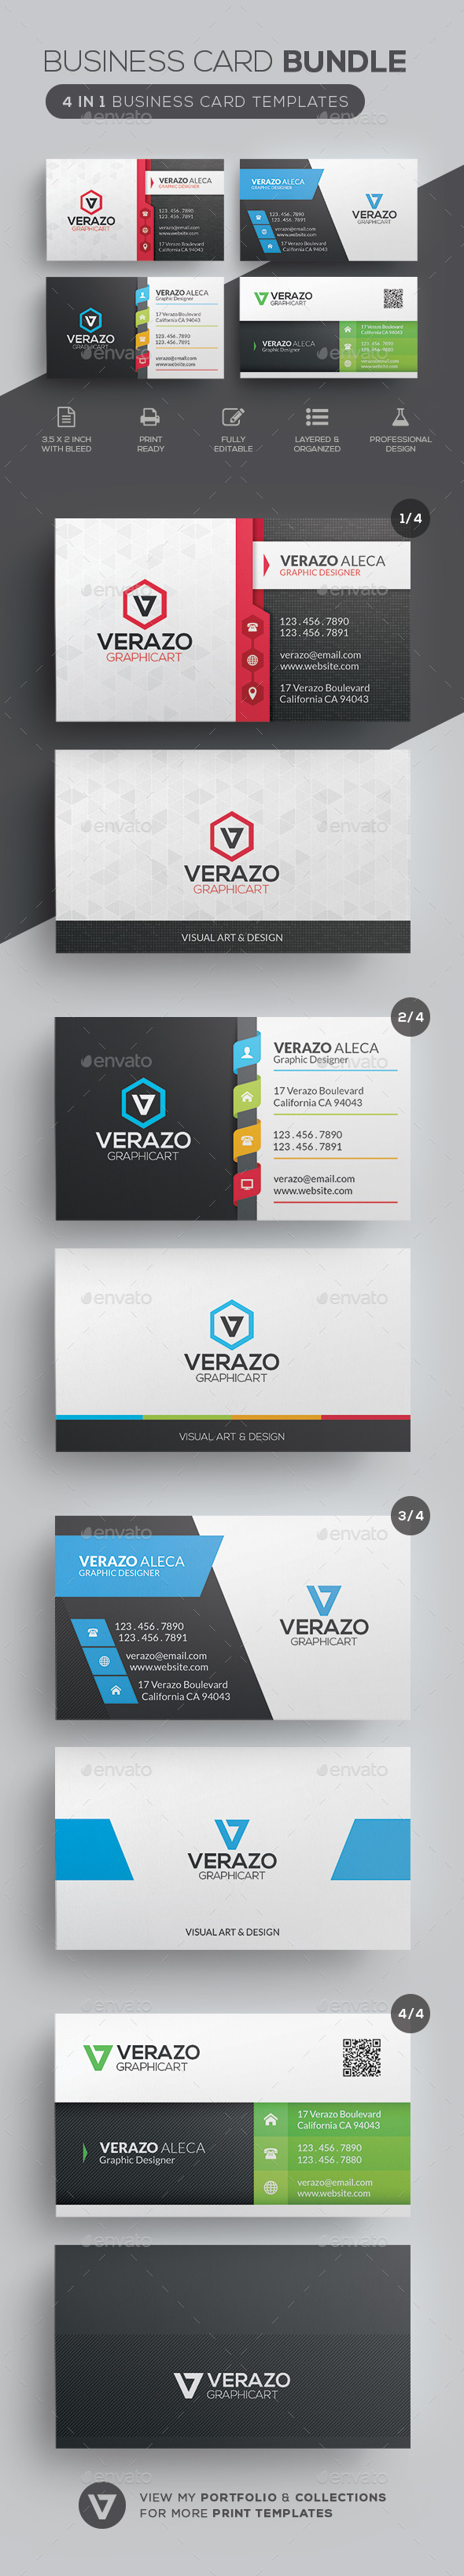 4 in 1 Bundle - Business Card - Corporate Business Cards